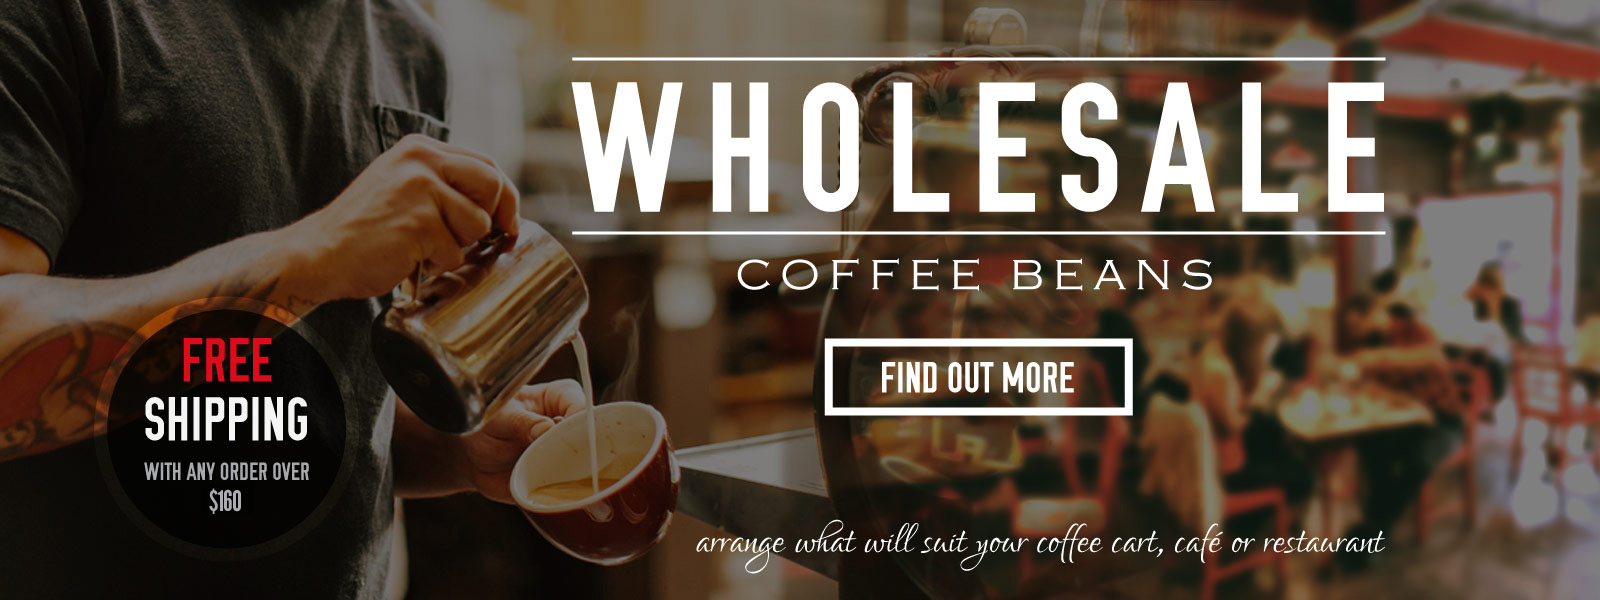 buy wholesale coffee beans australia wholesale coffee beans australiacoffee beans shop australia. Black Bedroom Furniture Sets. Home Design Ideas